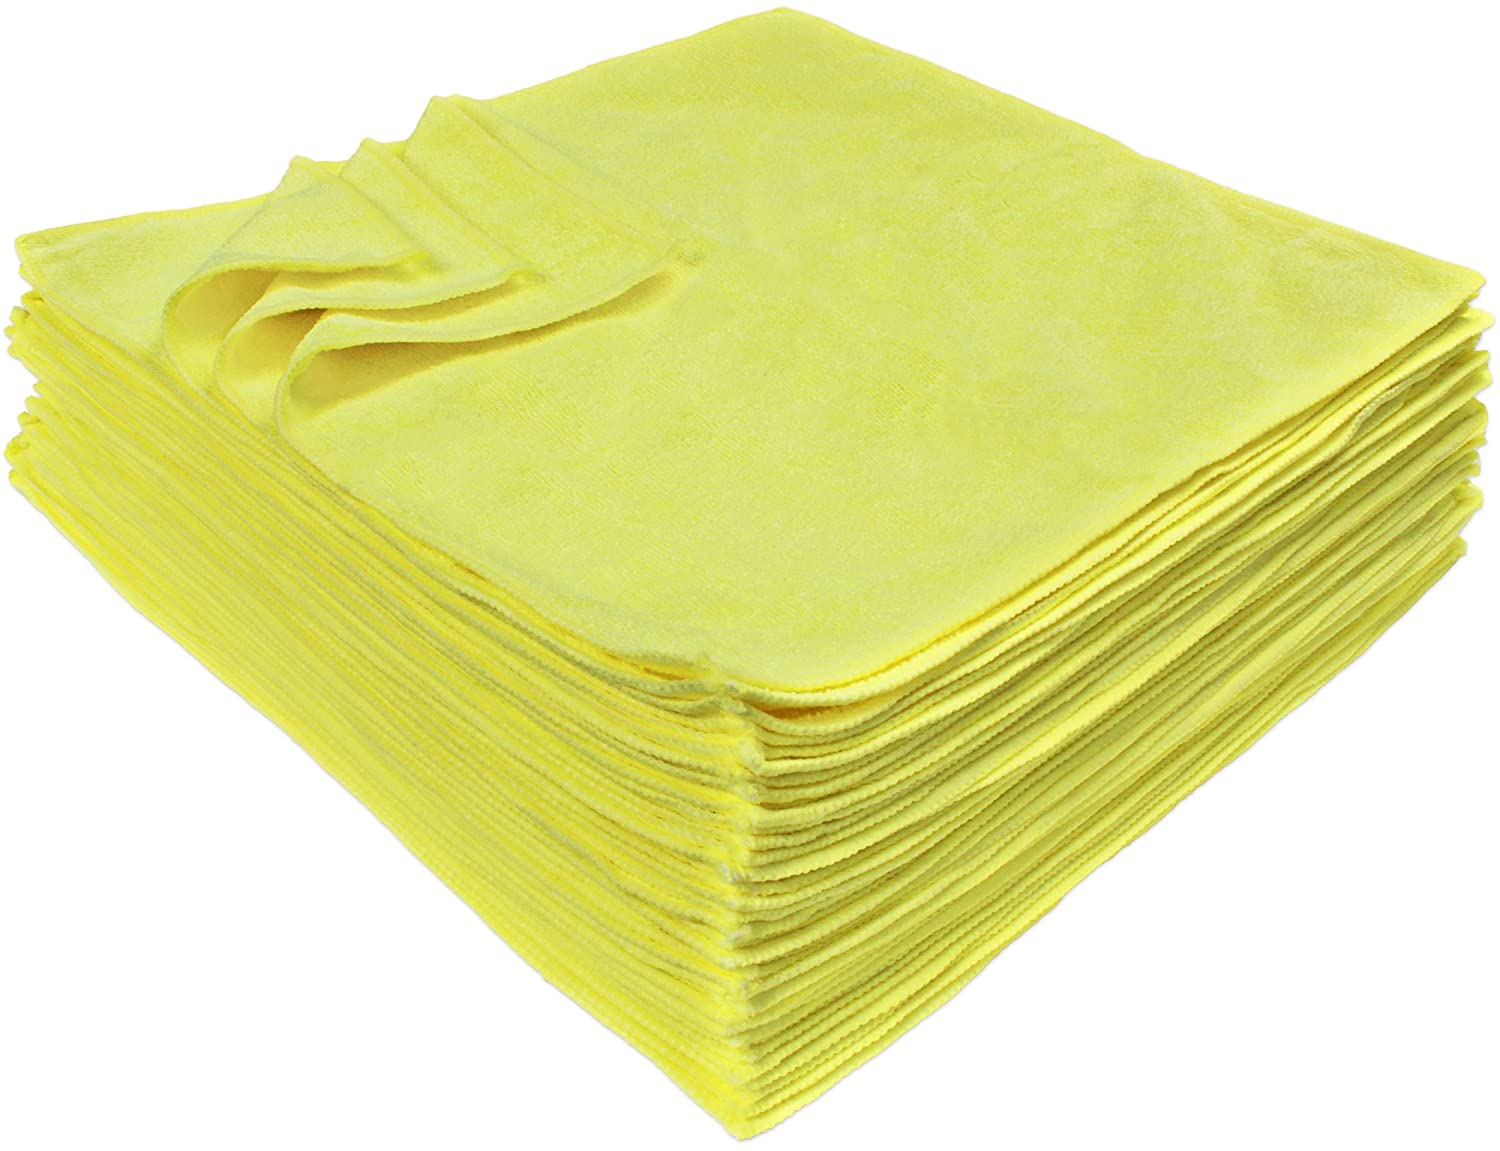 Eurow Microfiber Premium 16in x 16in 350 GSM Cleaning Towels 36-Pack DP-MT-16-36